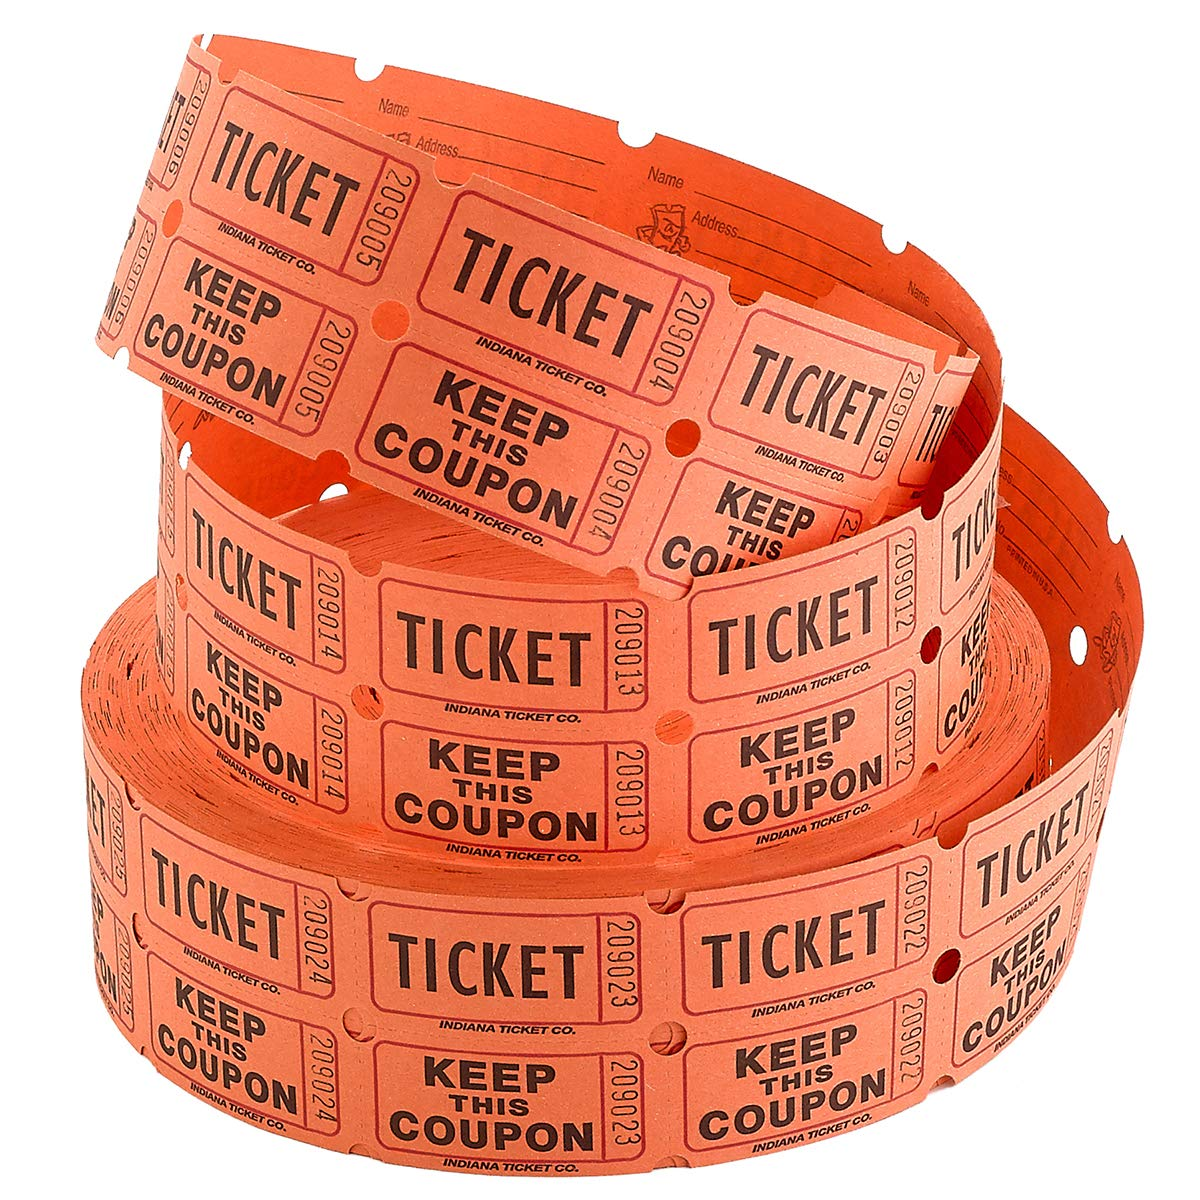 Kicko Raffle Tickets - Double Roll Tickets - Orange - Roll of 2000 Tickets - Fundraisers - Authentic Coupons - Indiana Ticket Company by Kicko